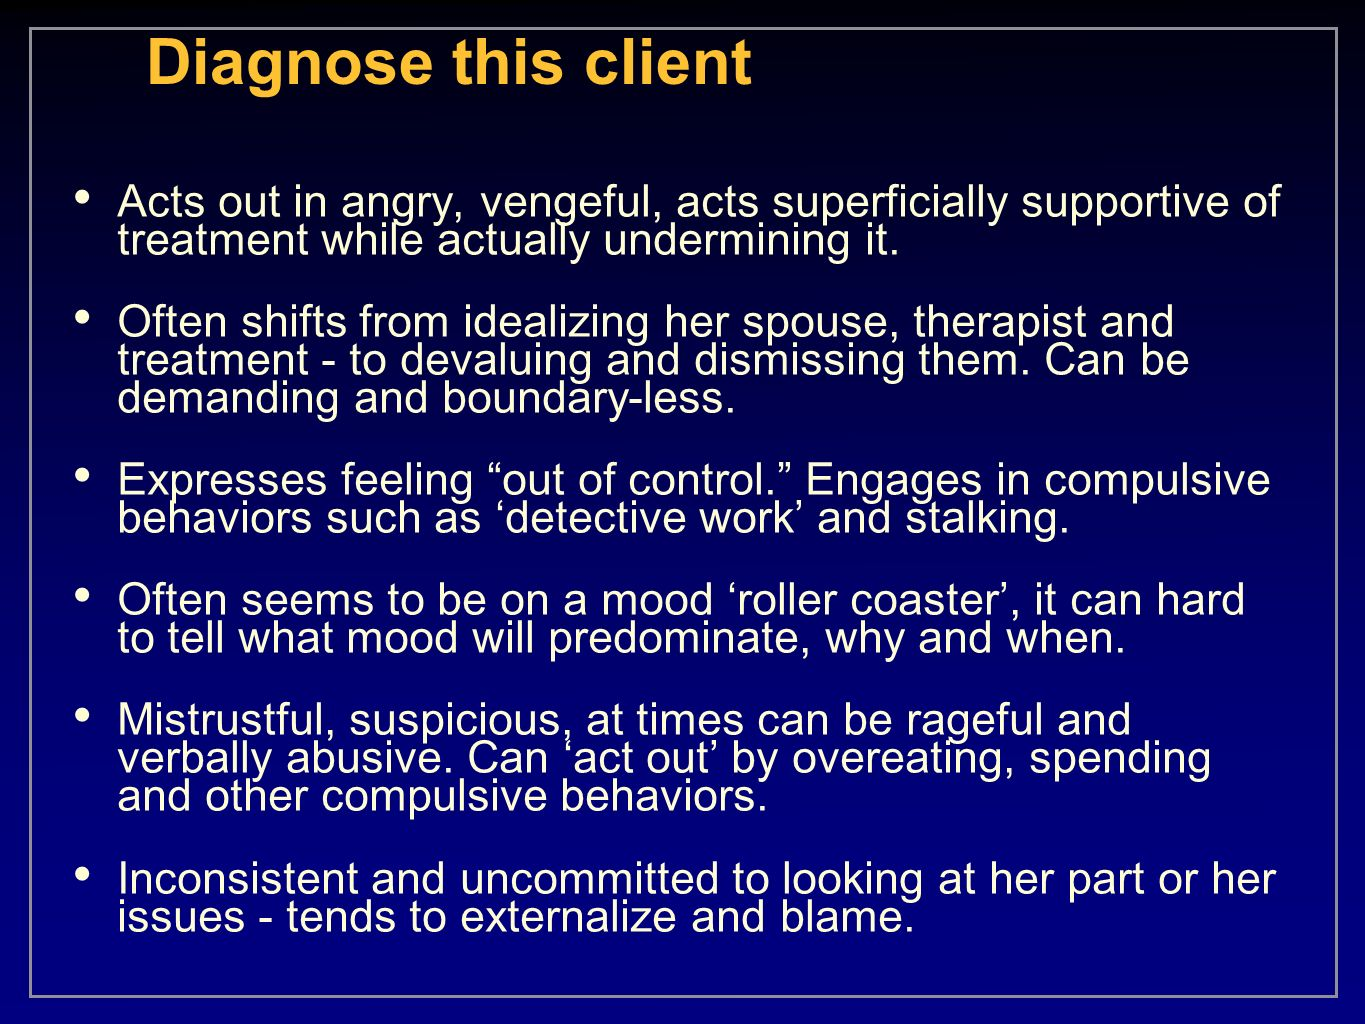 Diagnose this clientActs out in angry, vengeful, acts superficially supportive of treatment while actually undermining it.